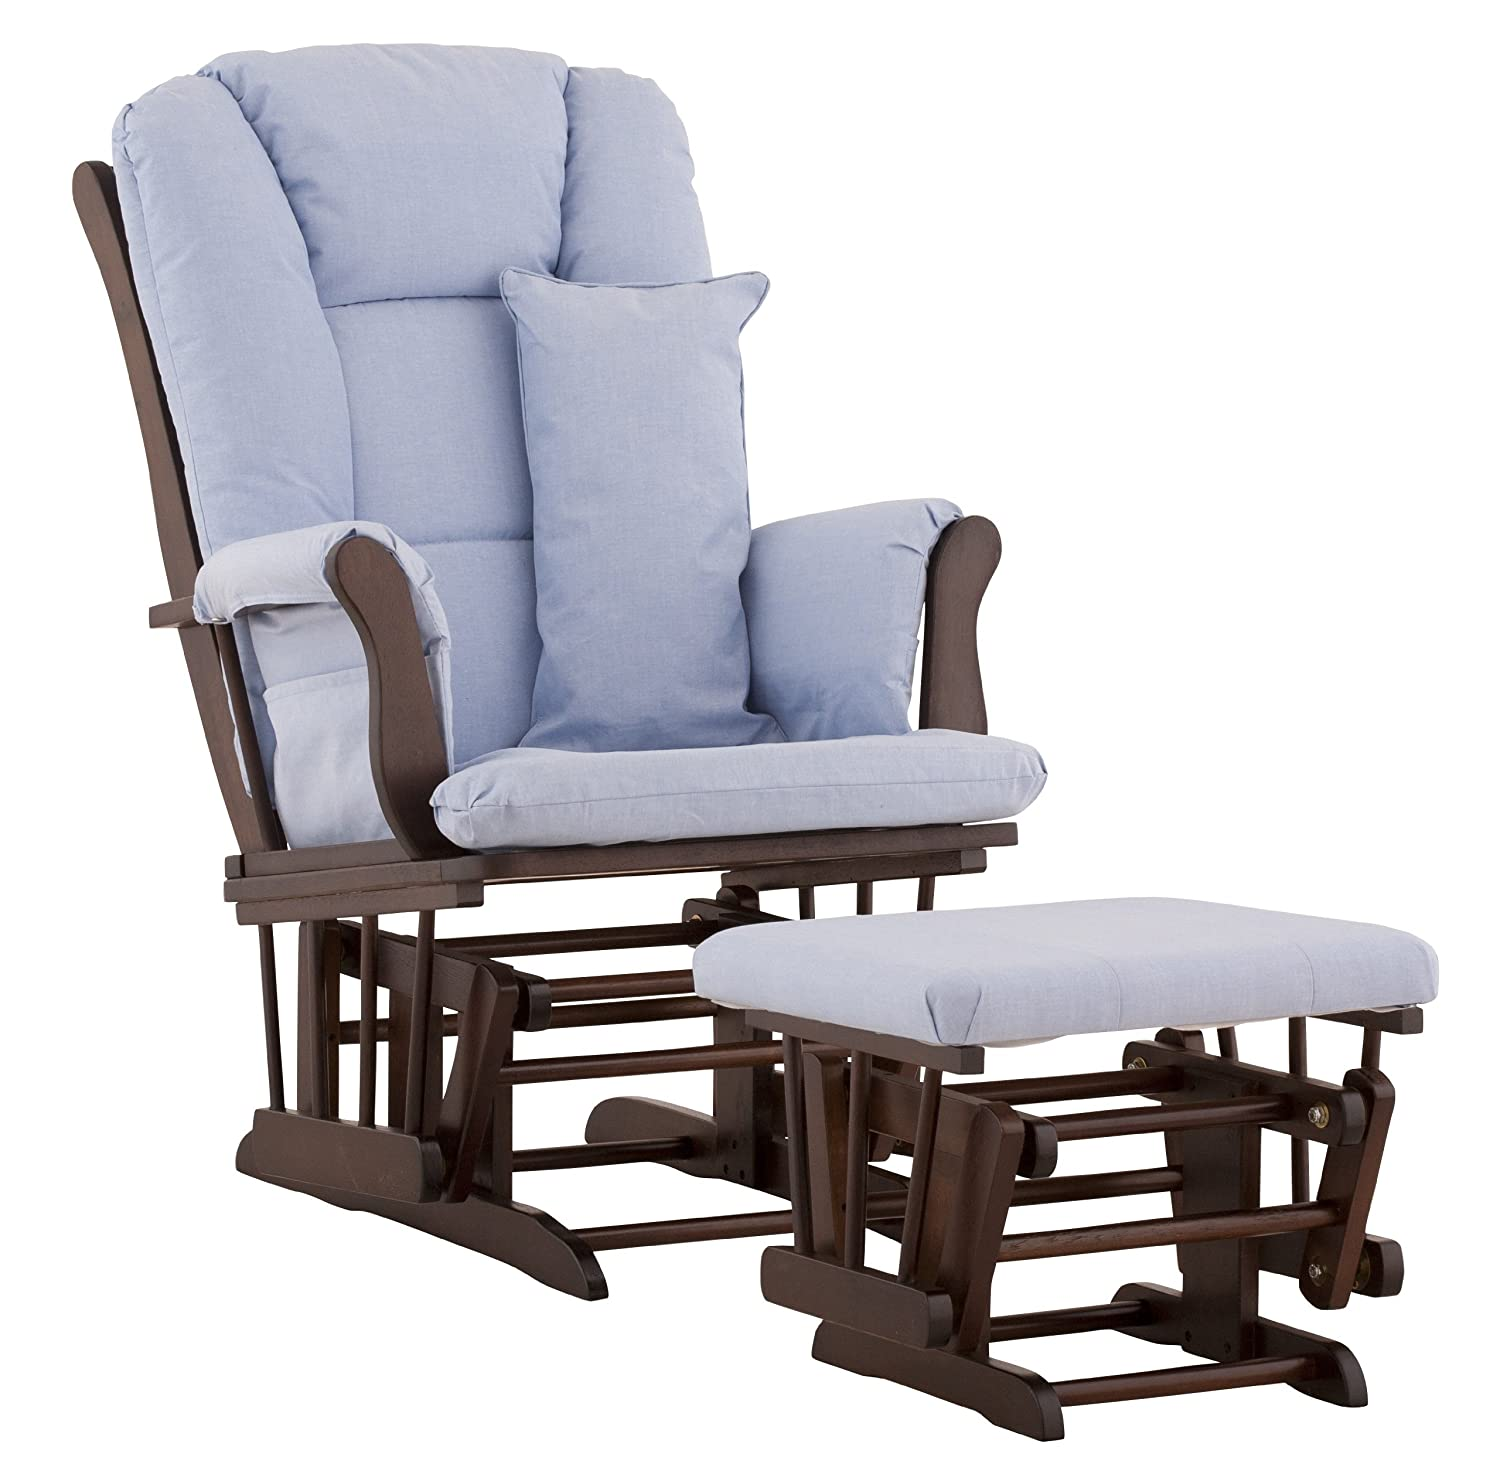 Stork Craft Custom Tuscany Espresso Finish Glider and Ottoman. Click for more baby items that helped me survive the first year of baby!